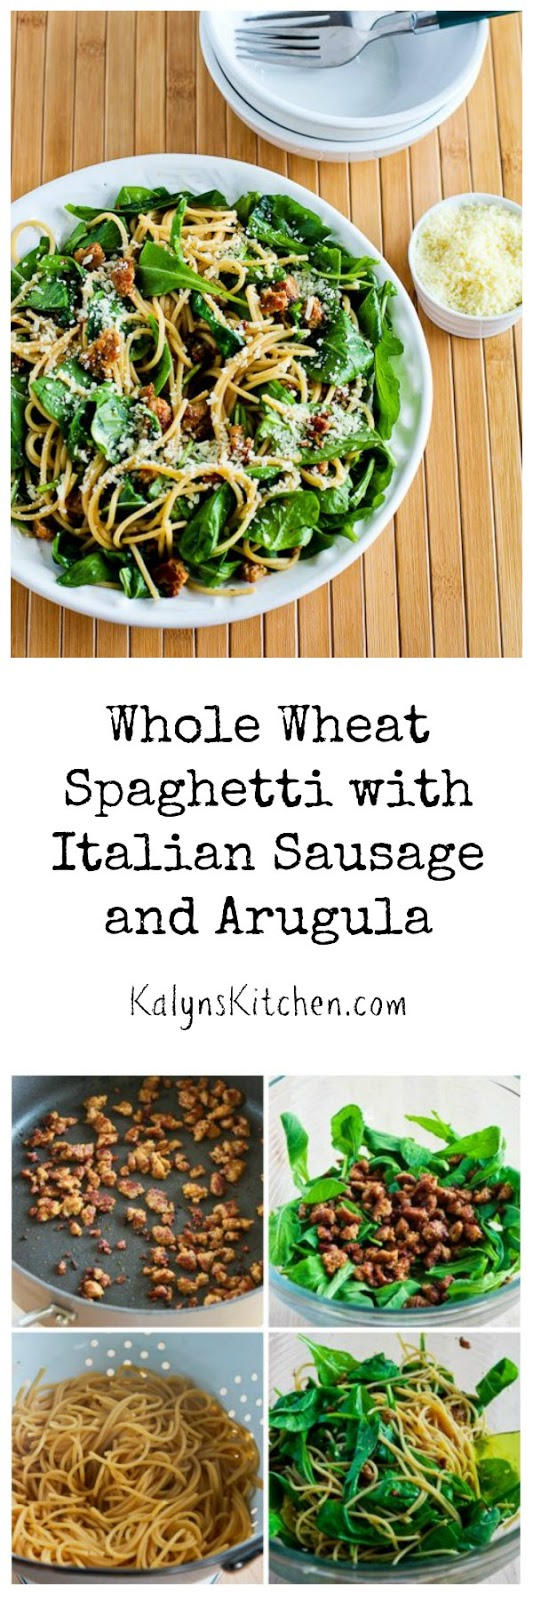 ... Kitchen®: Whole Wheat Spaghetti with Italian Sausage and Arugula